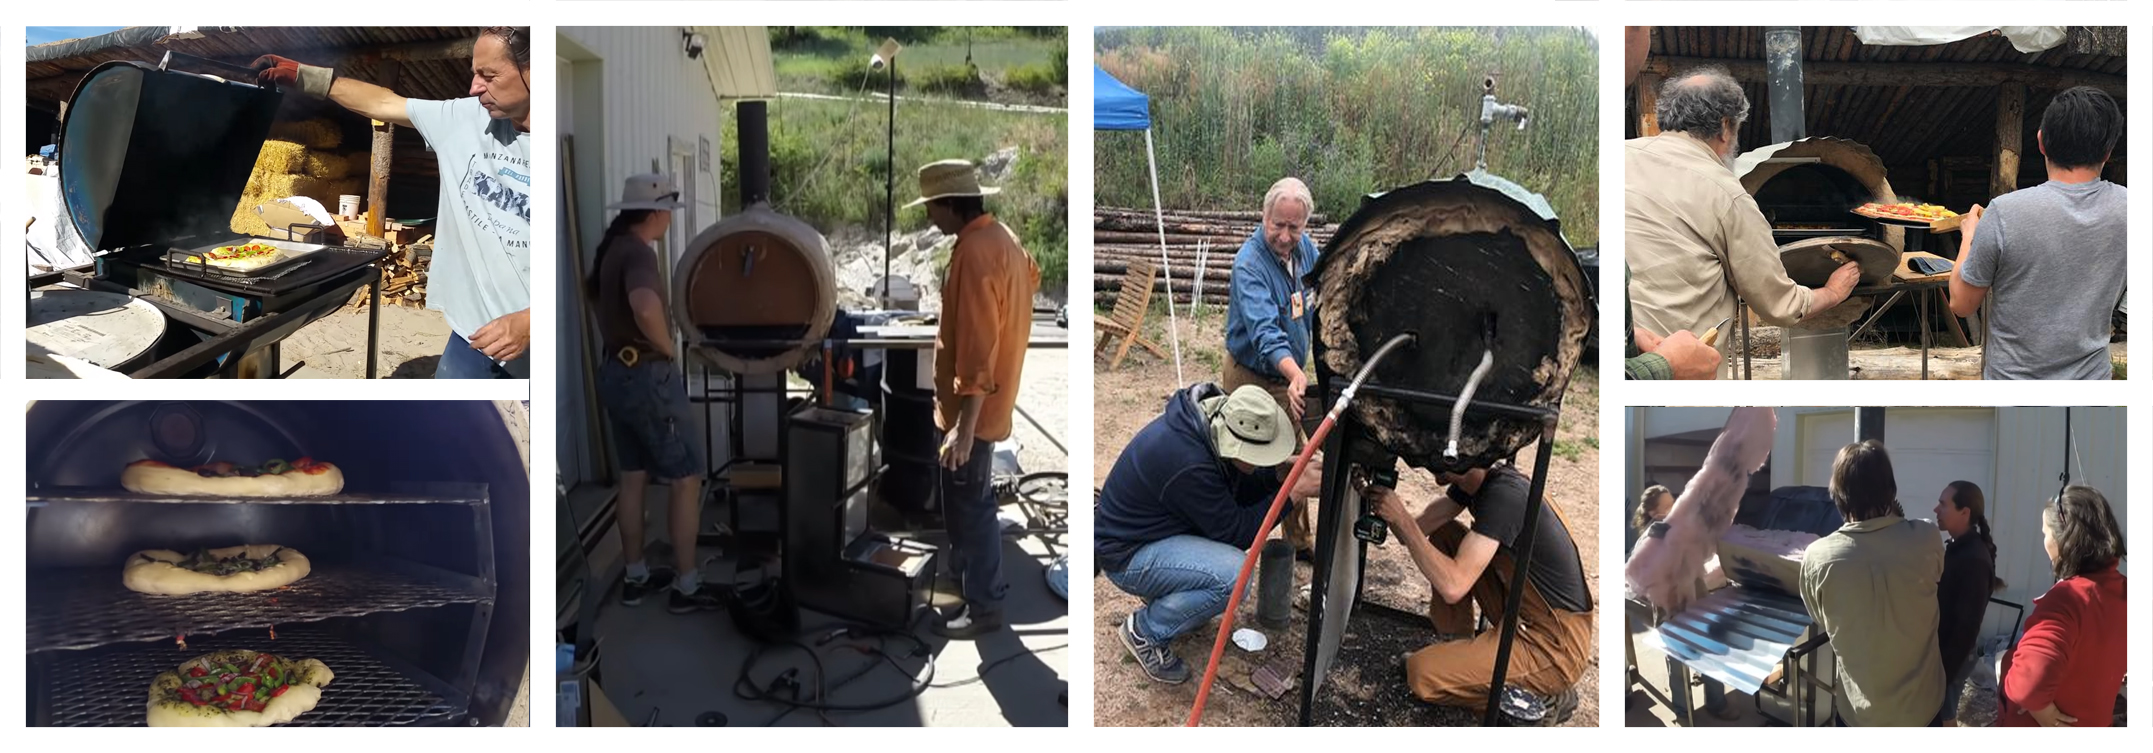 people building and using rocket ovens